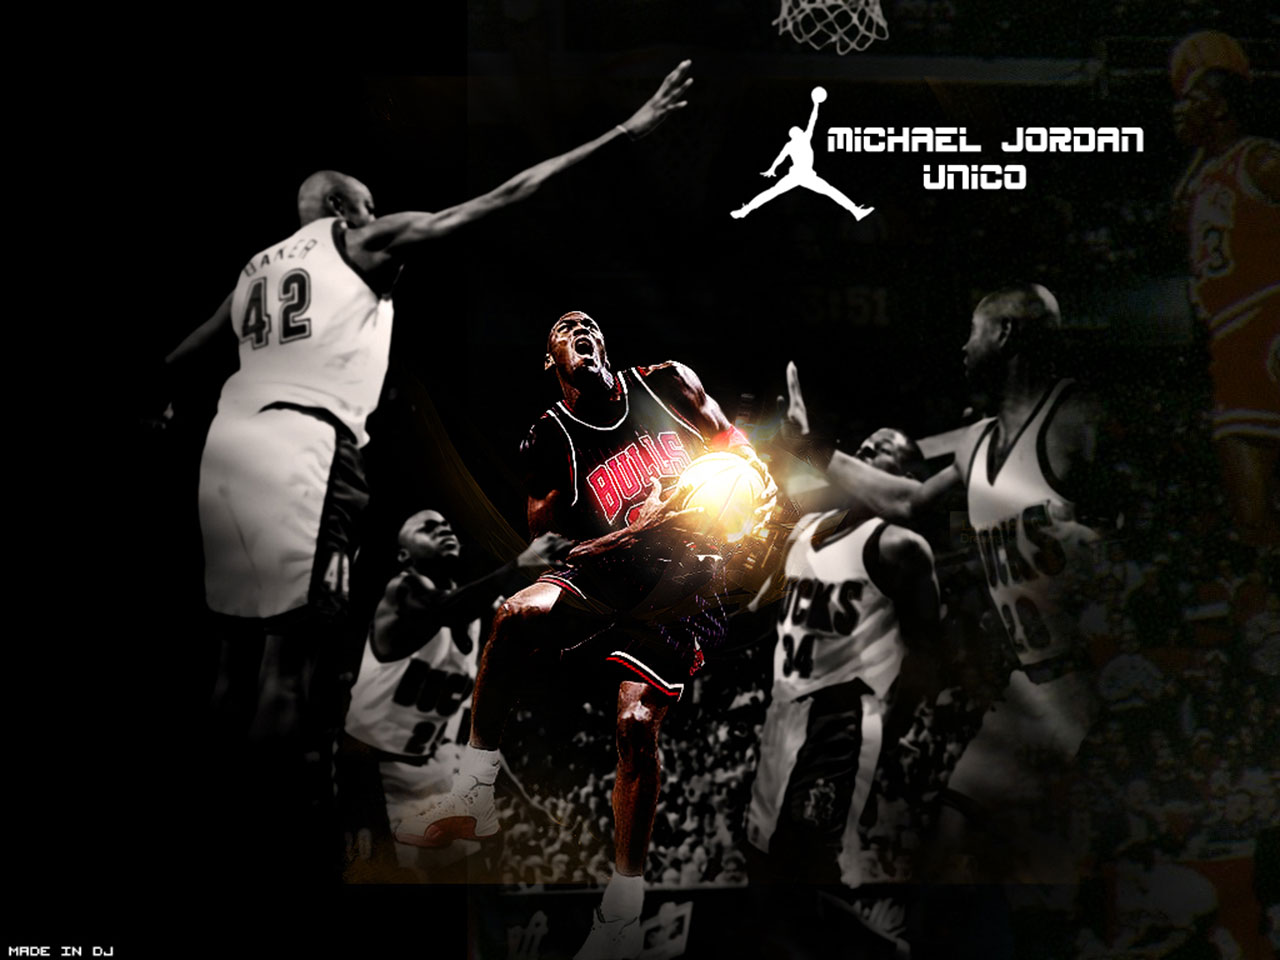 legend - 3 new wallpapers of Michael Jordan :) this wallpaper represents